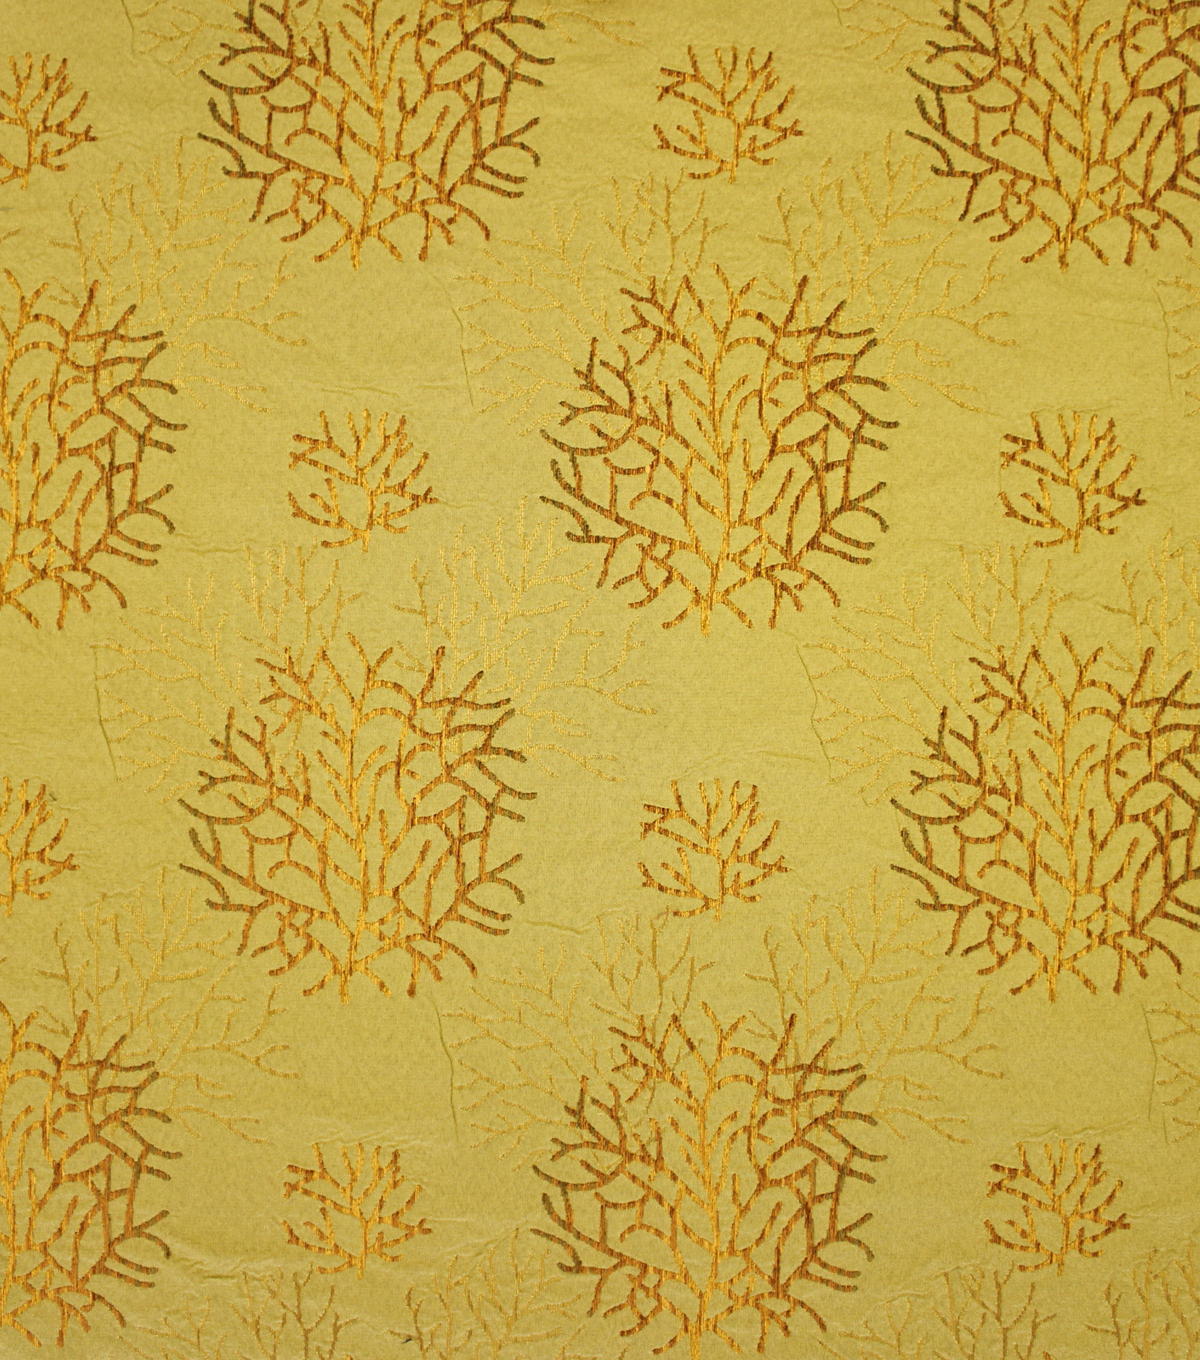 Home Decor 8\u0022x8\u0022 Fabric Swatch-Upholstery Fabric Barrow M7668-5704 Kelp